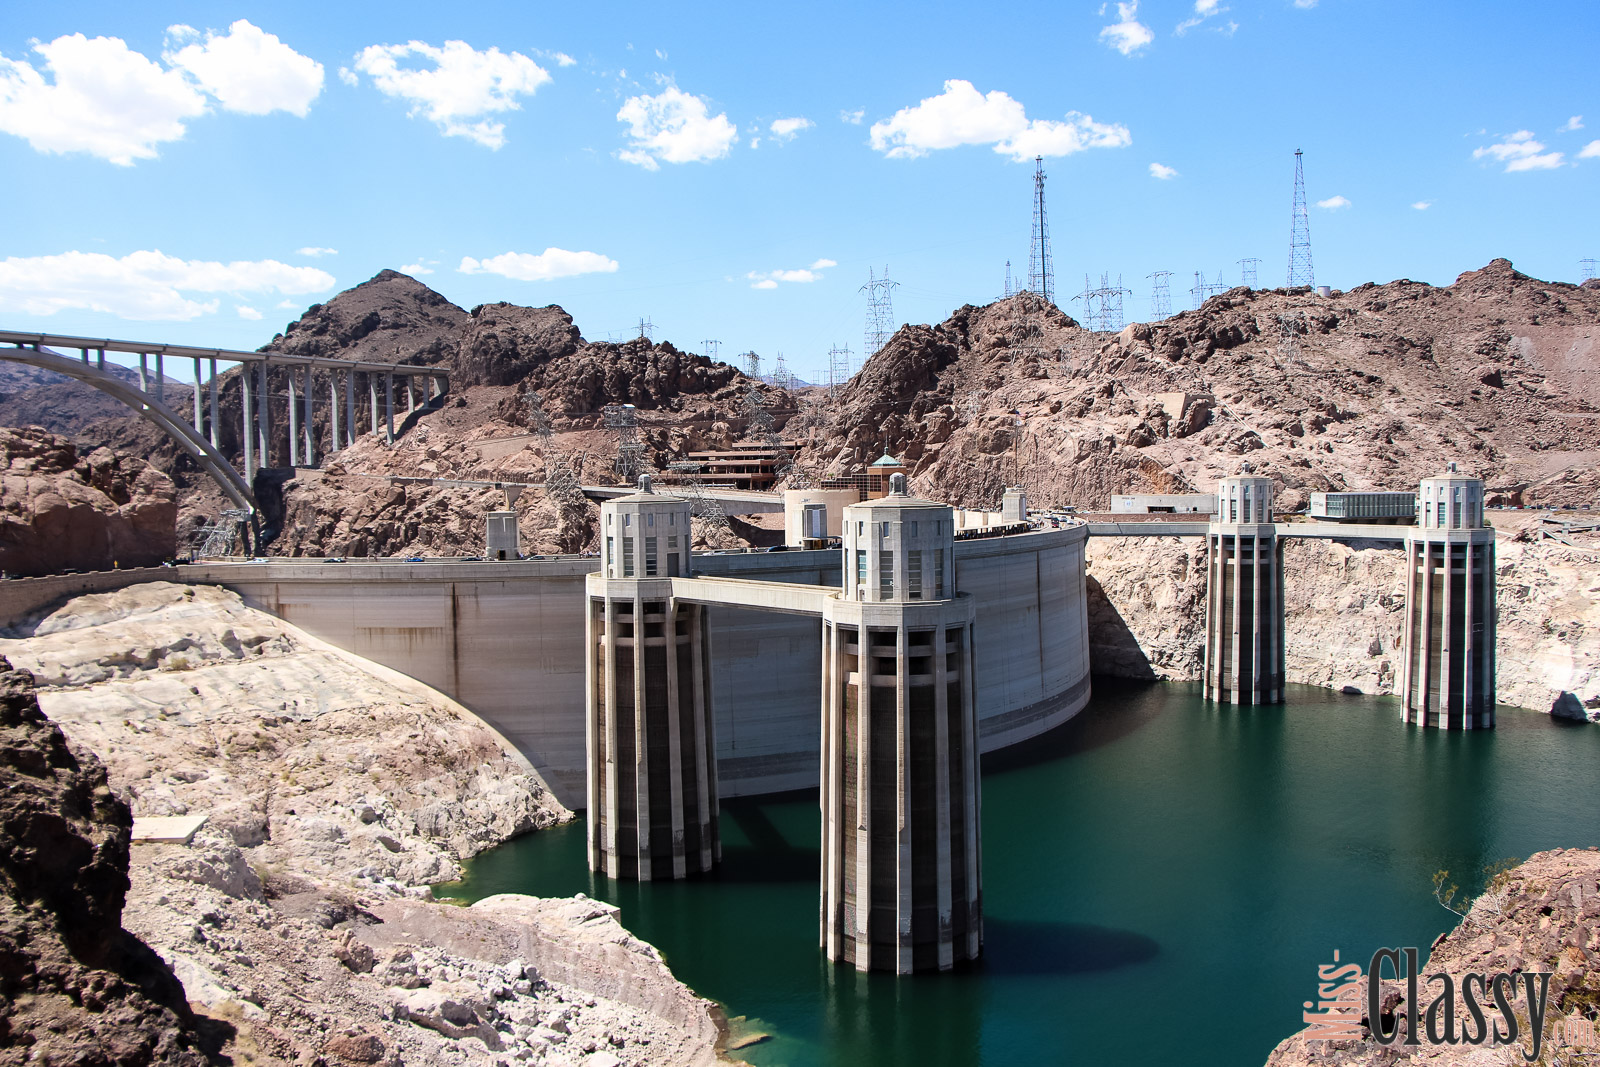 TRAVEL Hoover Dam und Lake Mead, Miss Classy, miss-classy.com, Lifestyleblog, Lifestyleblogger, Lifestyleblog Graz, Travelblog, Travelblogger, Graz, Steiermark, Österreich, classy, beclassy, Reise, Travel, Wanderlust, Wayfarer, Roadtrip, USA, United States of America, Amerika, Las Vegas, Hoover Dam, Lake Mead, Hoover Talsperre